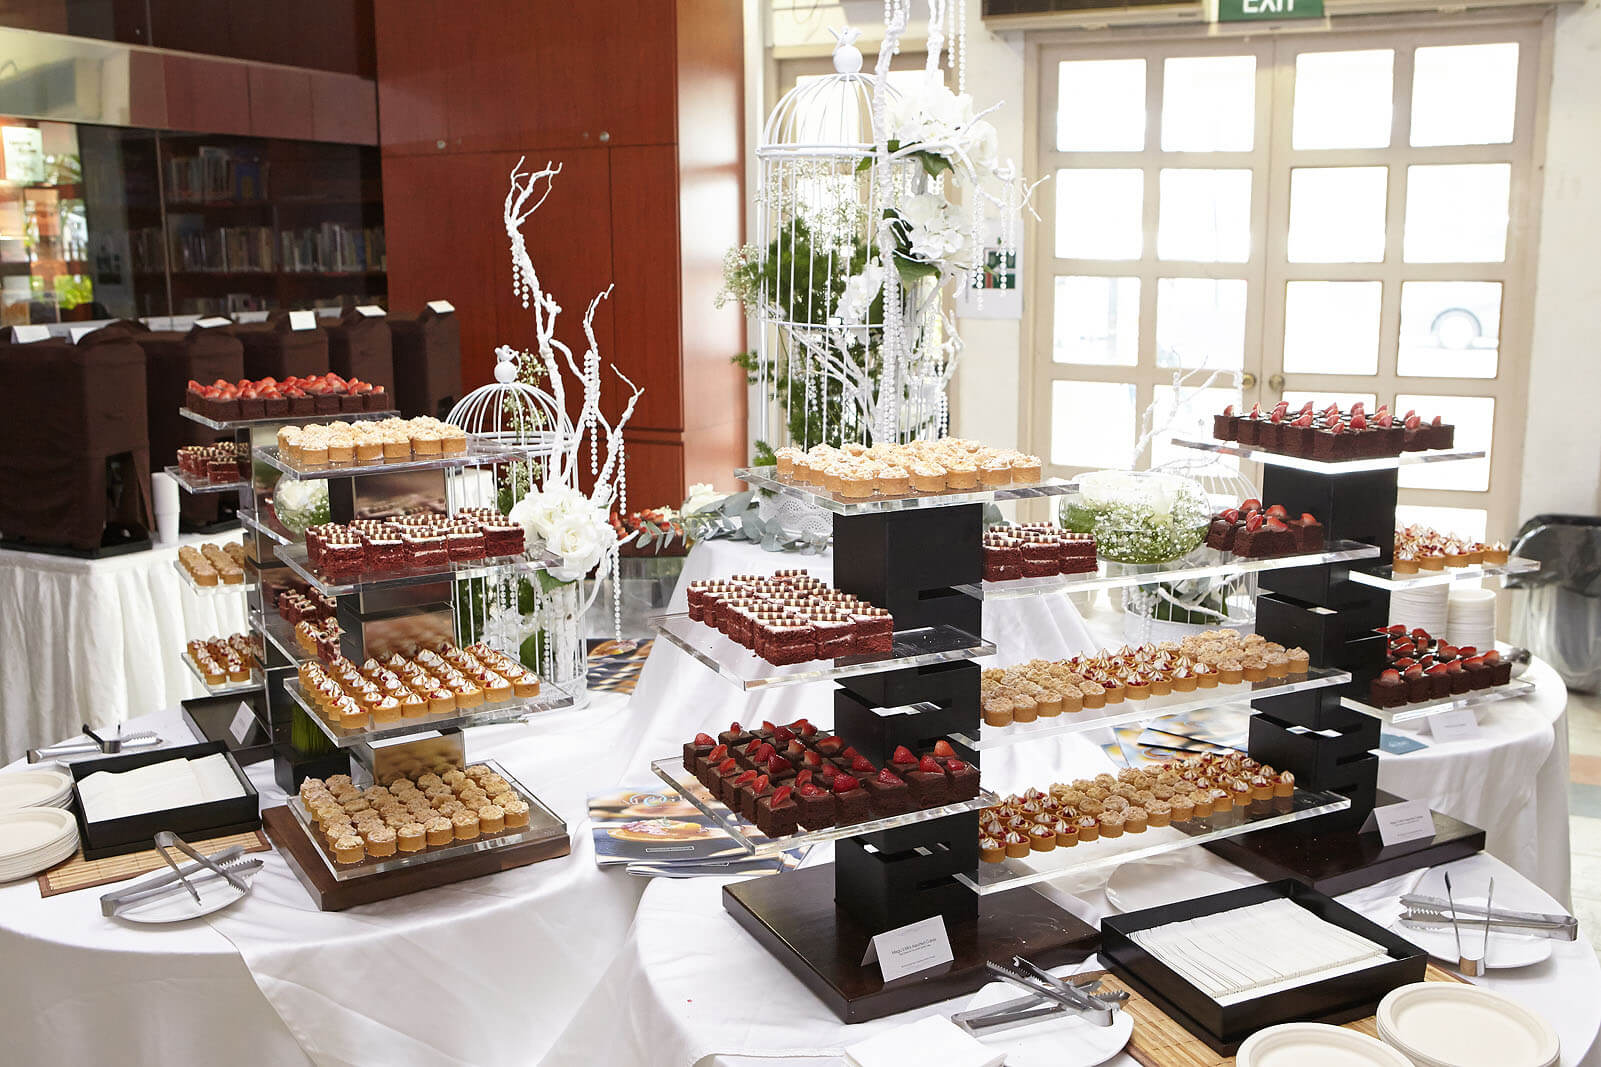 Buffet Cuisine Design Design Matters 17 Tips For Creating A Great Buffet